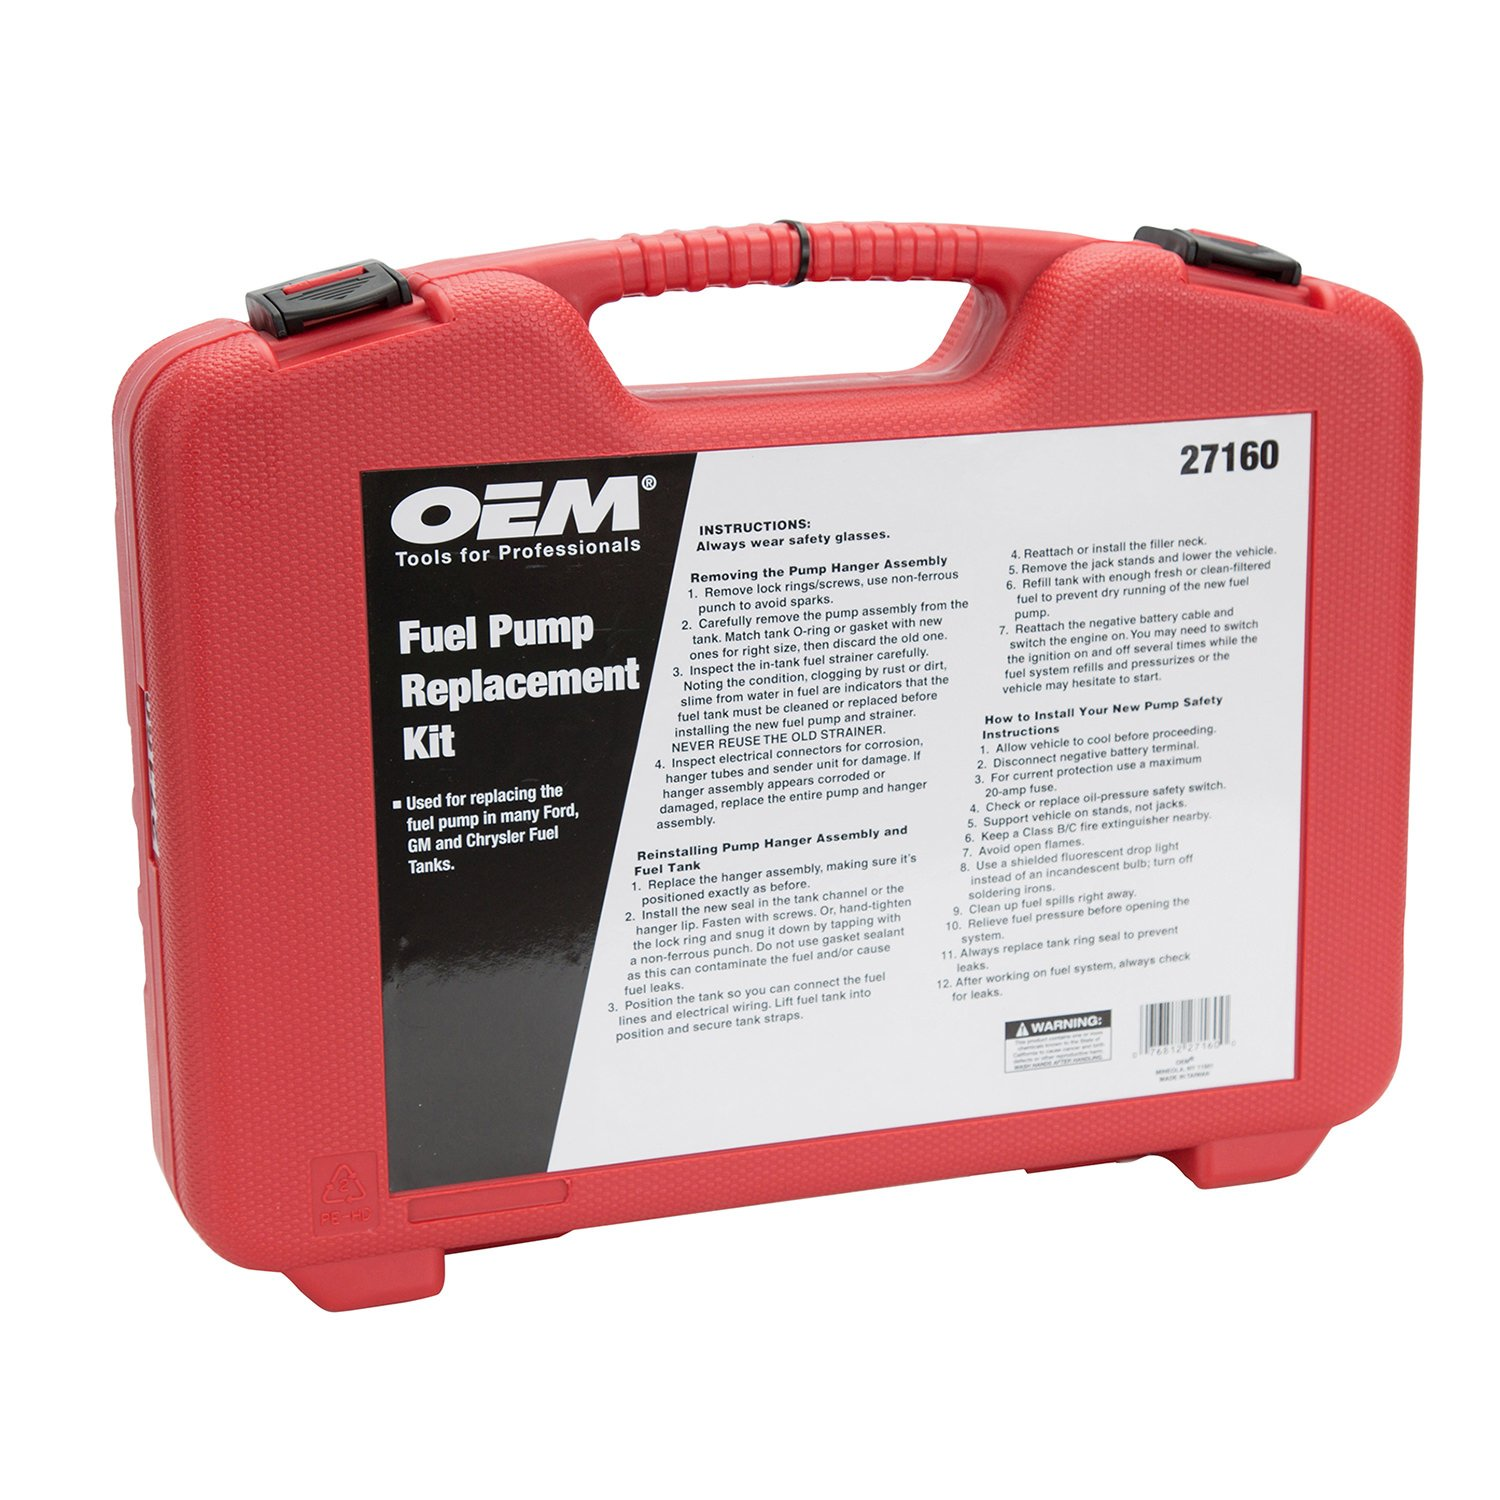 OEMTOOLS  27160 Fuel Pump Replacement Kit by OEMTOOLS (Image #2)